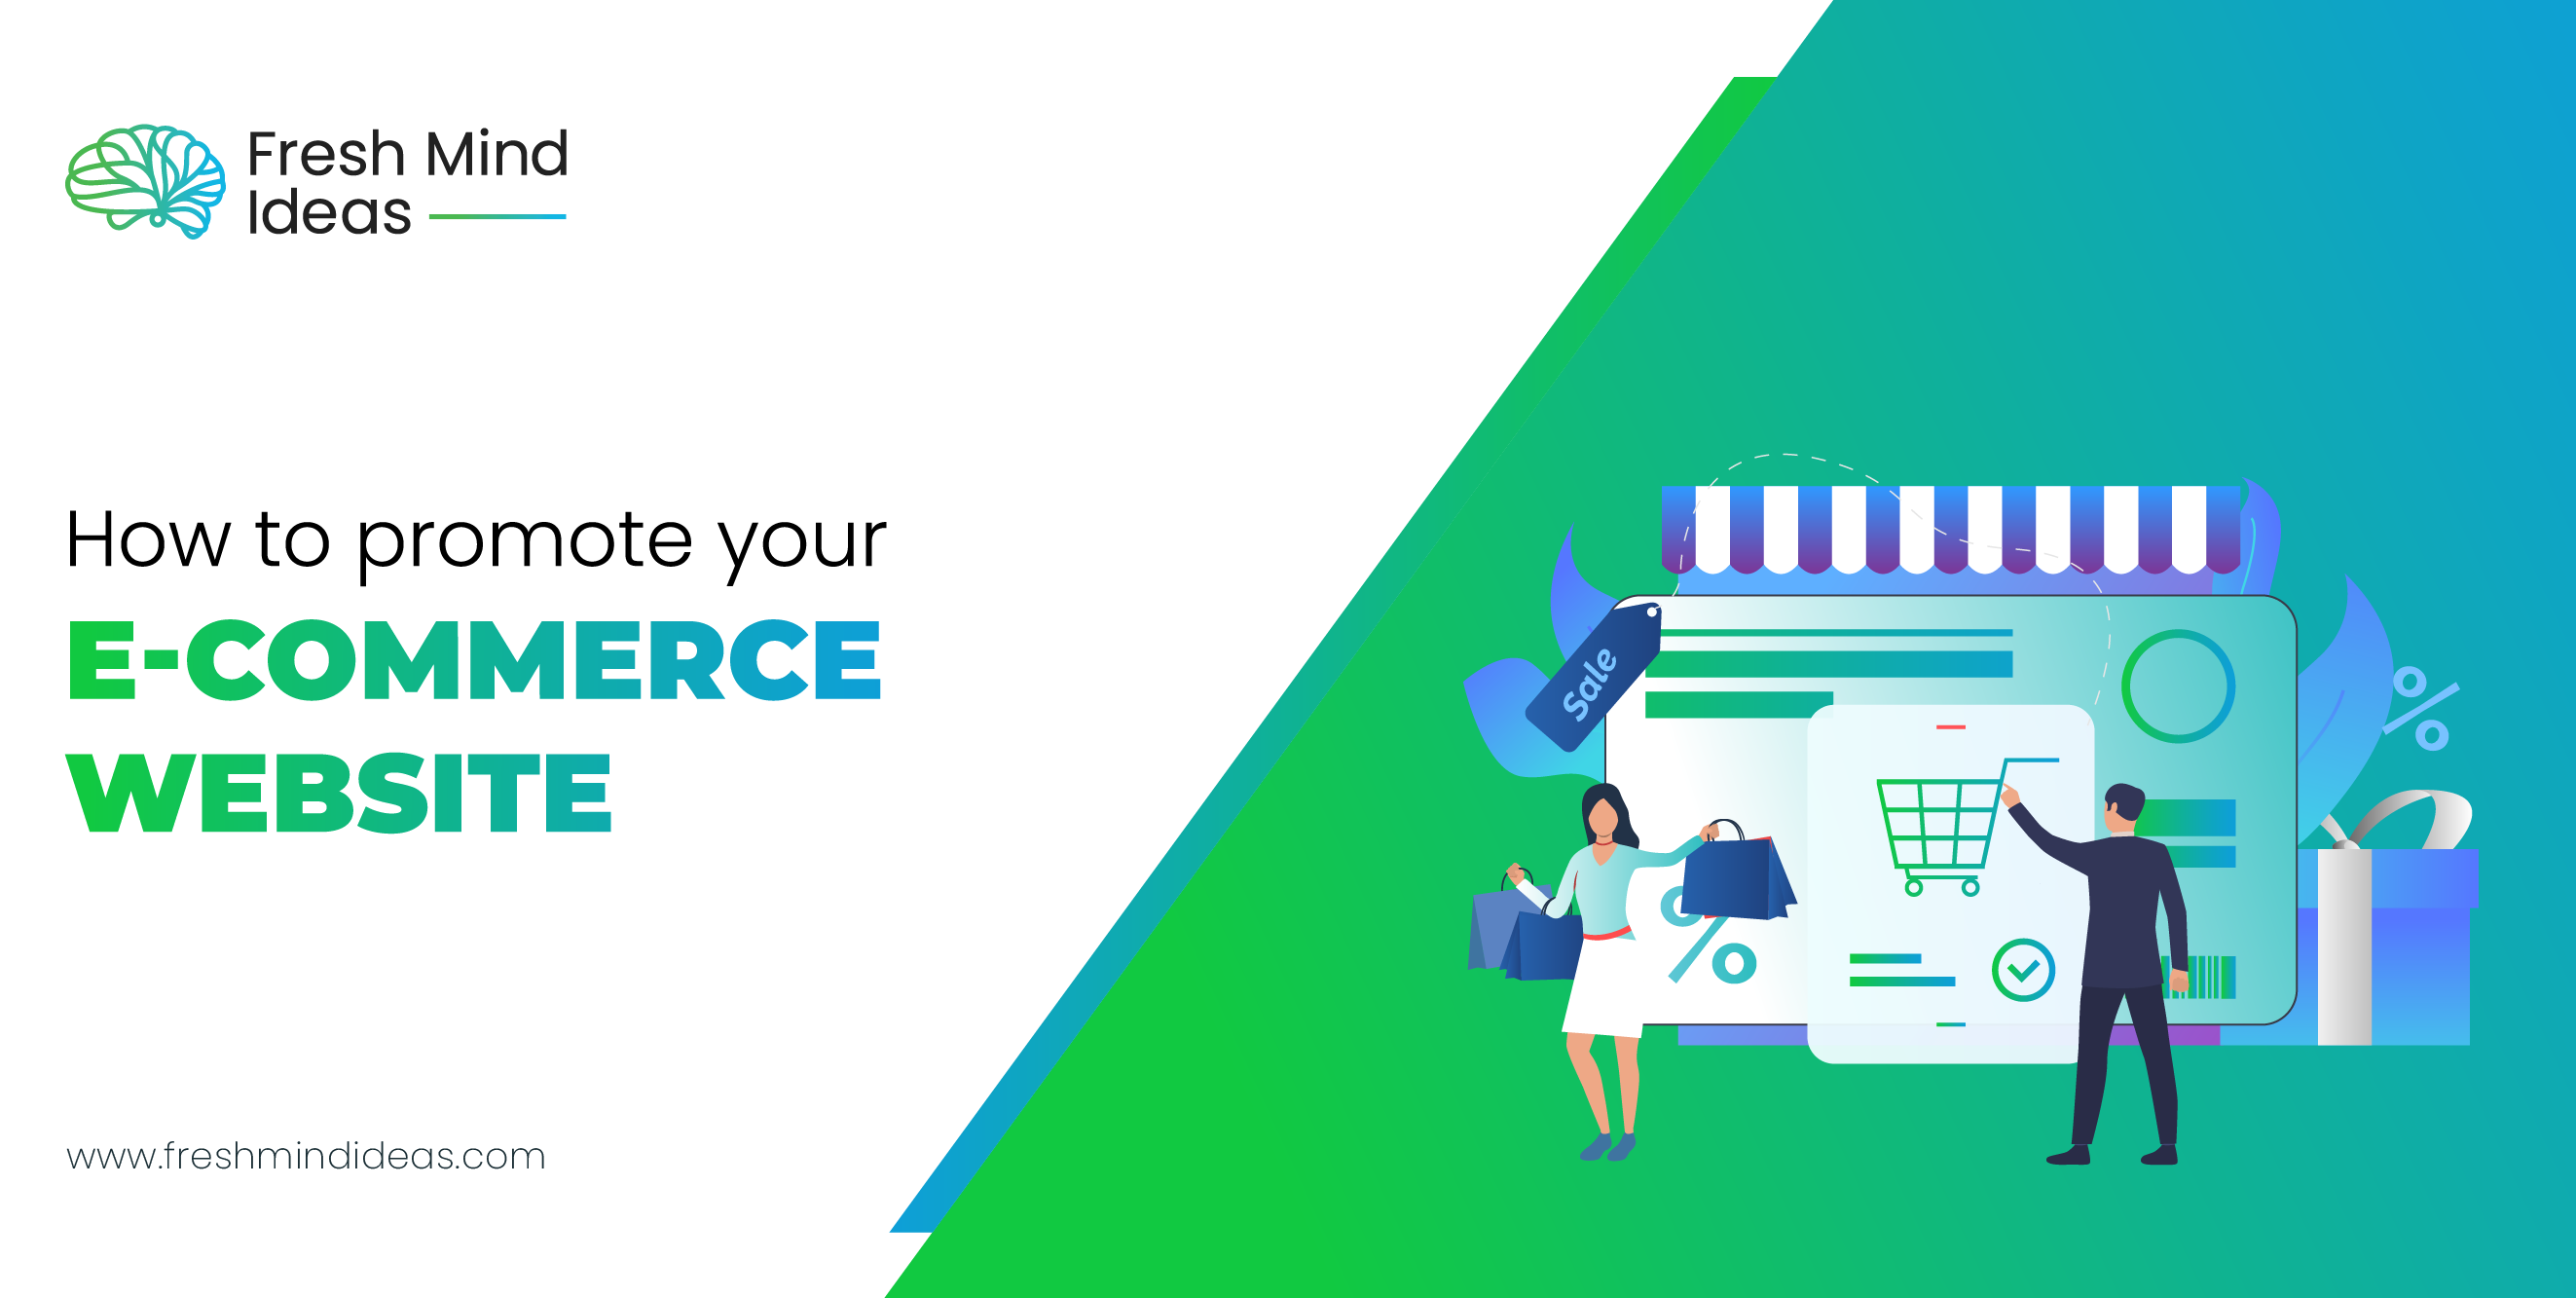 How to promote your e-commerce website